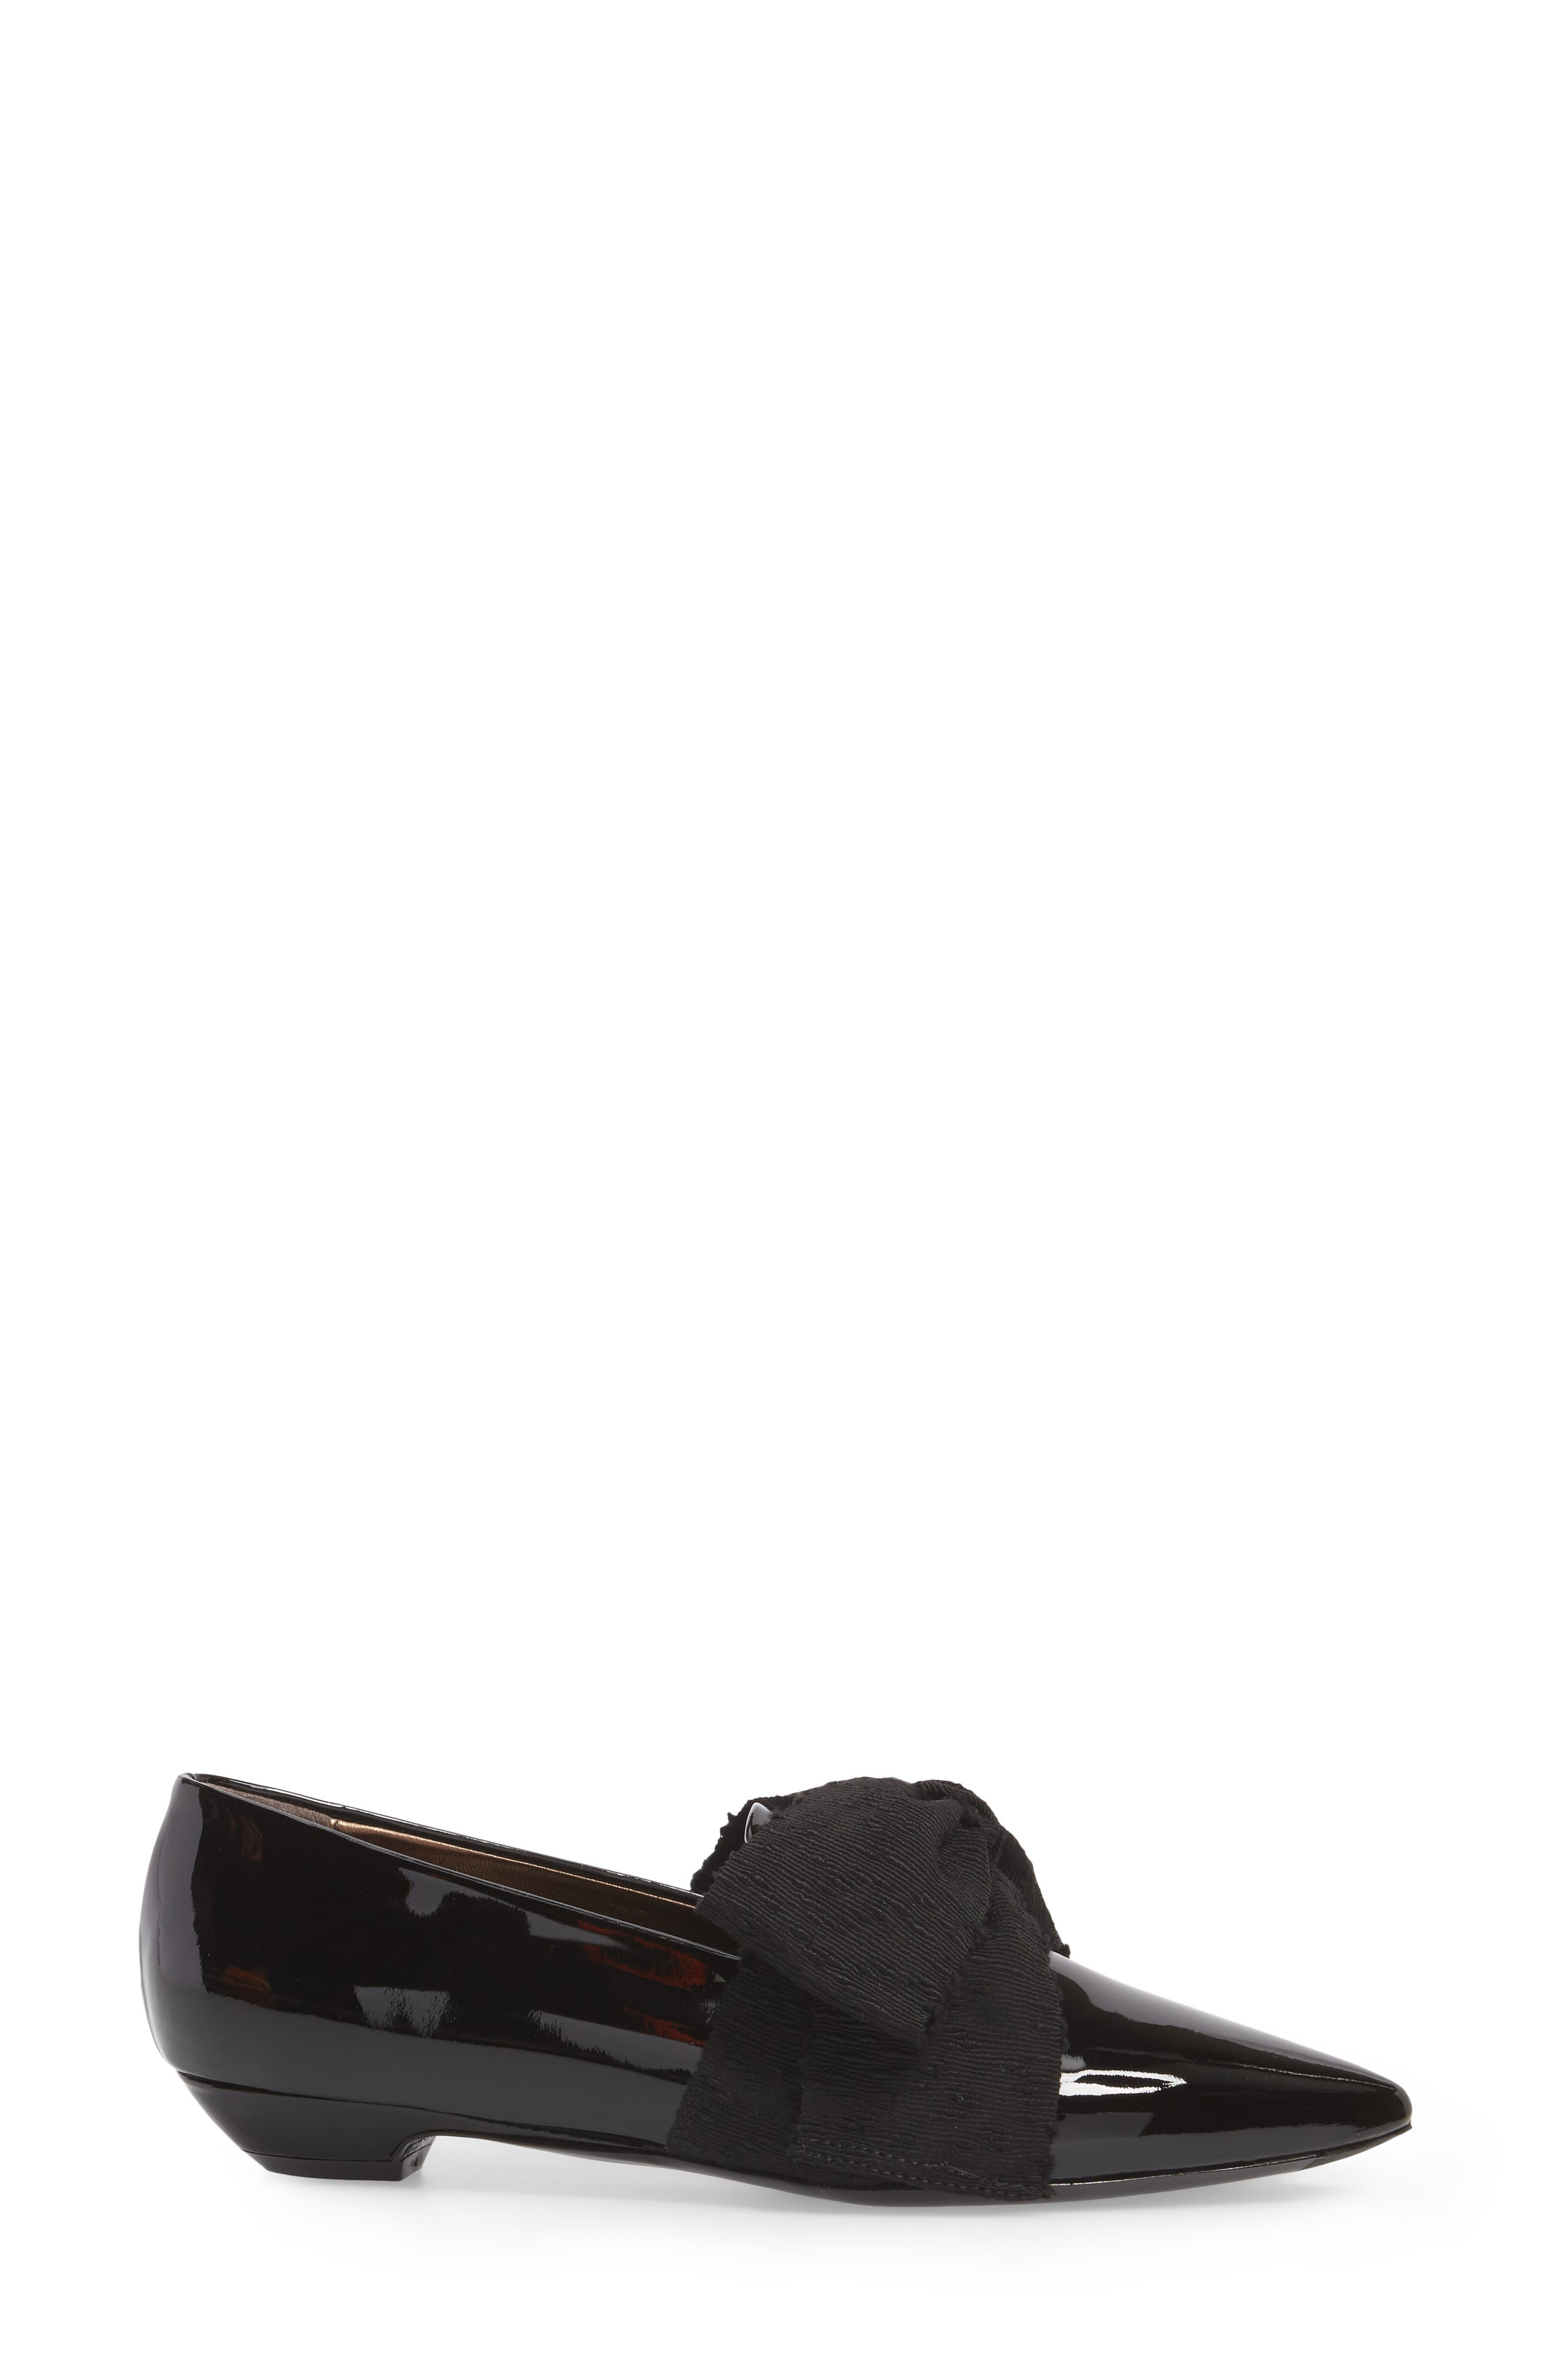 Maggie Bow Loafer,                             Alternate thumbnail 3, color,                             Black Patent